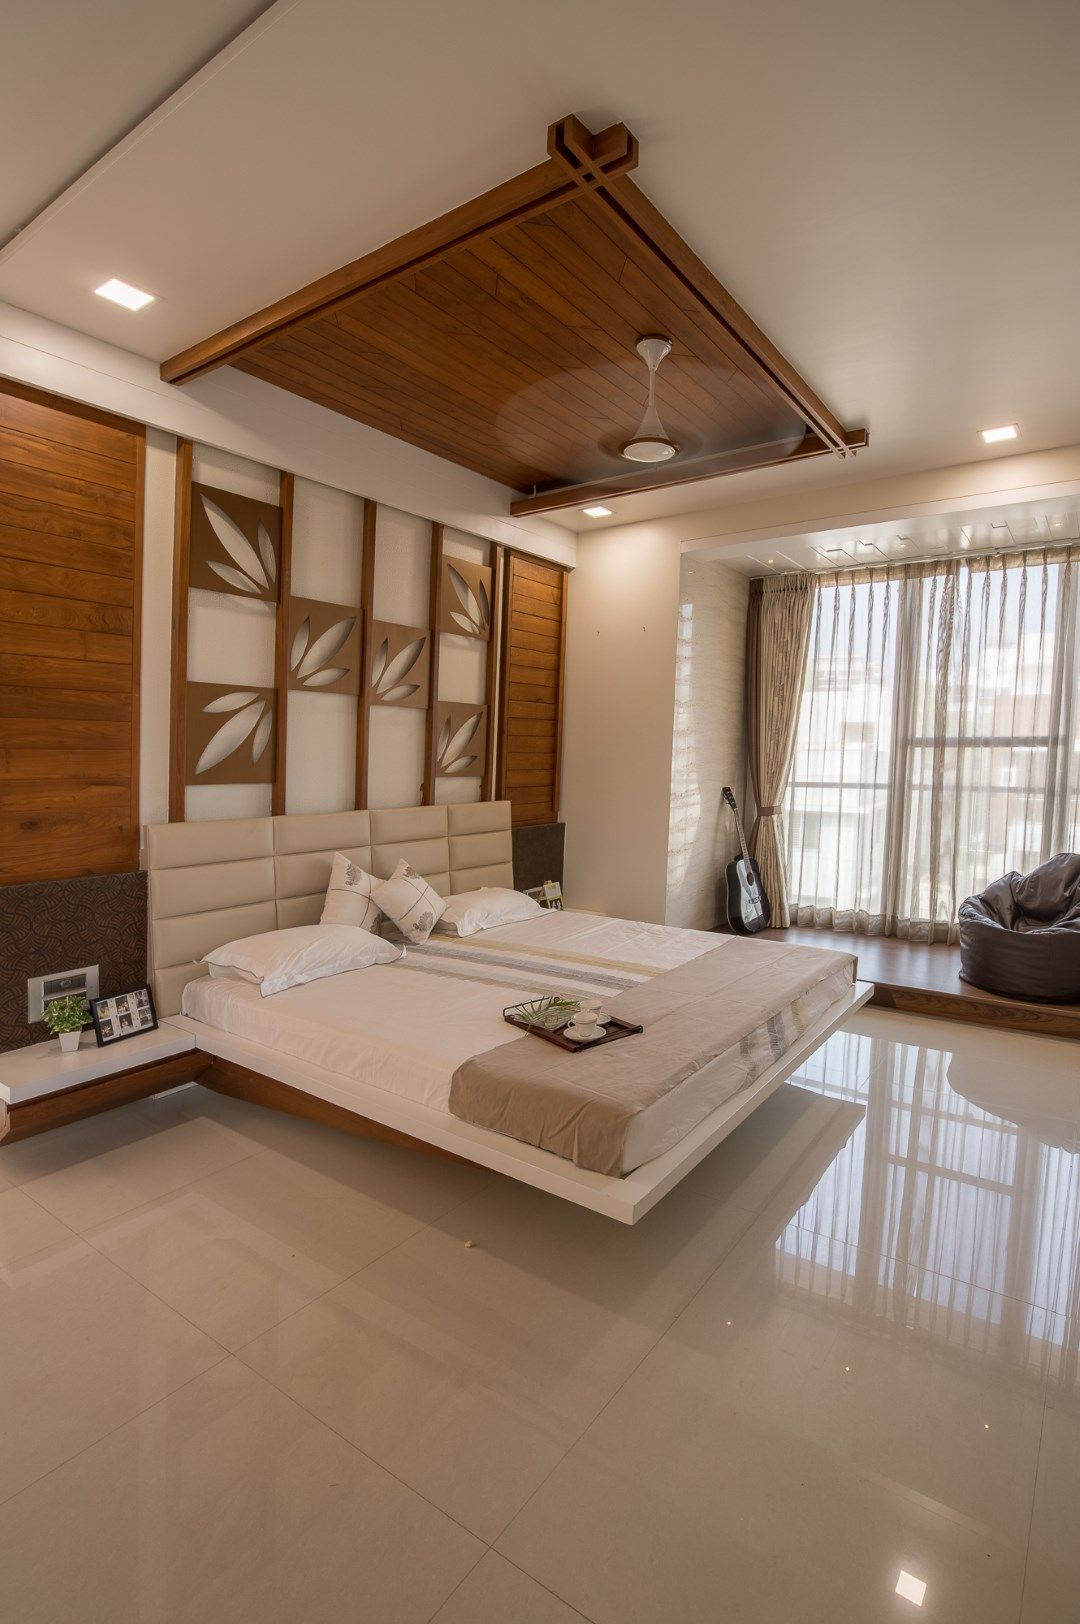 Color Bedroom Ideas All The Bedroom Design Ideas You Ll Ever Before Require Find Yo Modern Bedroom Interior Contemporary Bedroom Decor Modern Bedroom Design